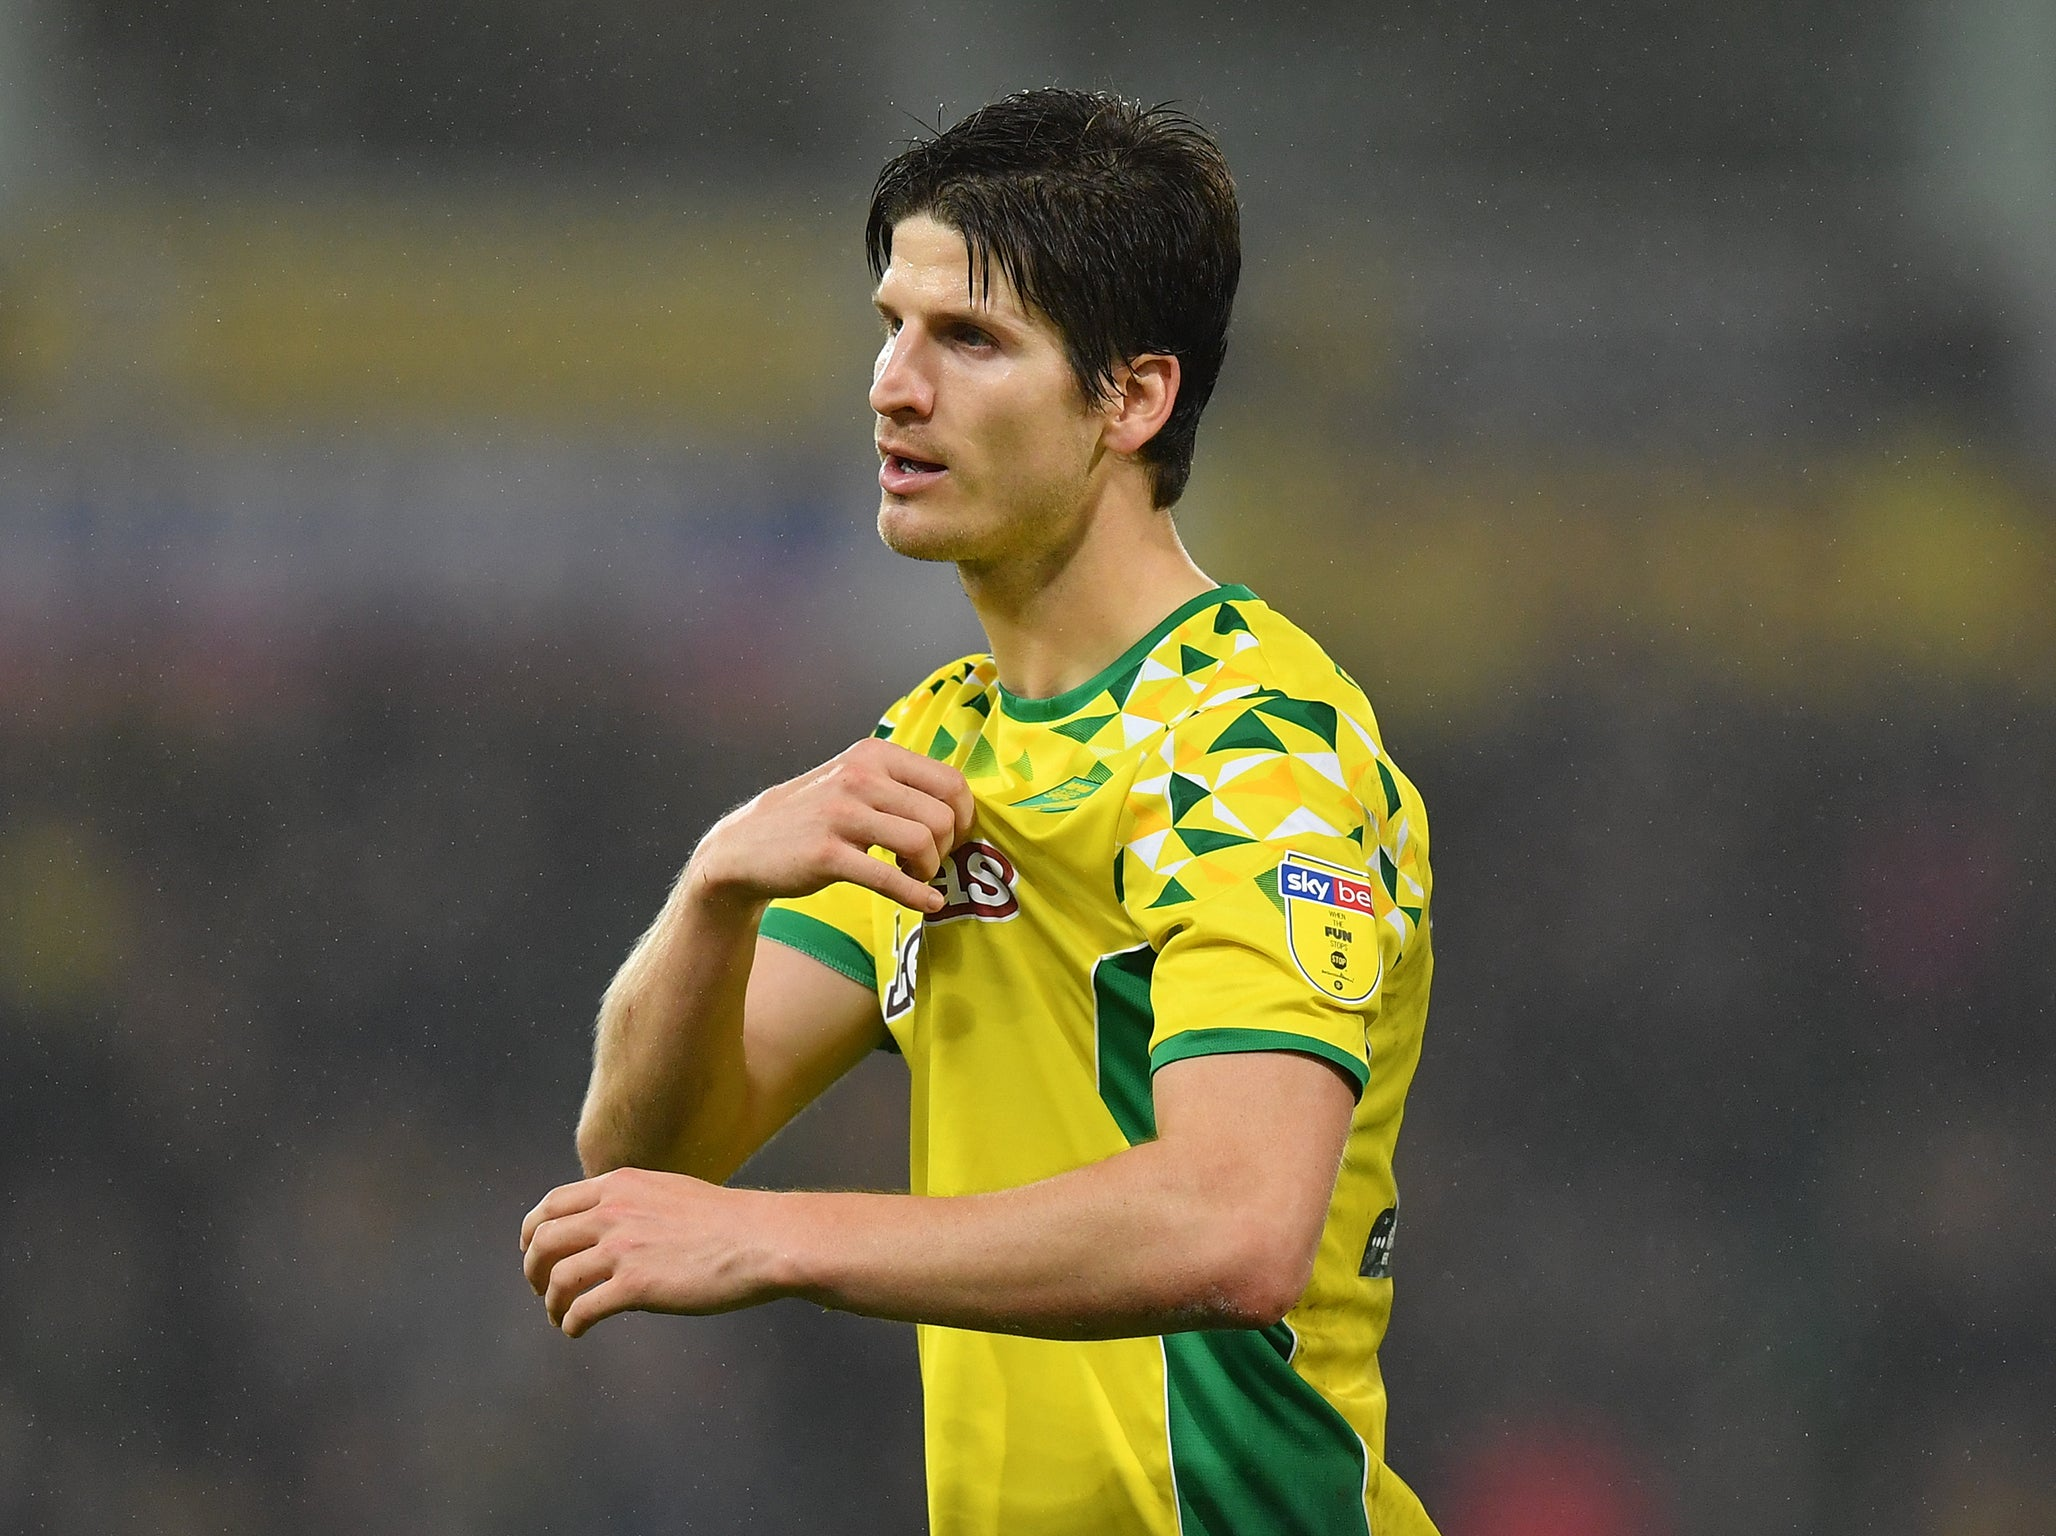 Norwich City defender Timm Klose all for a winter break in English football as injuries take their toll